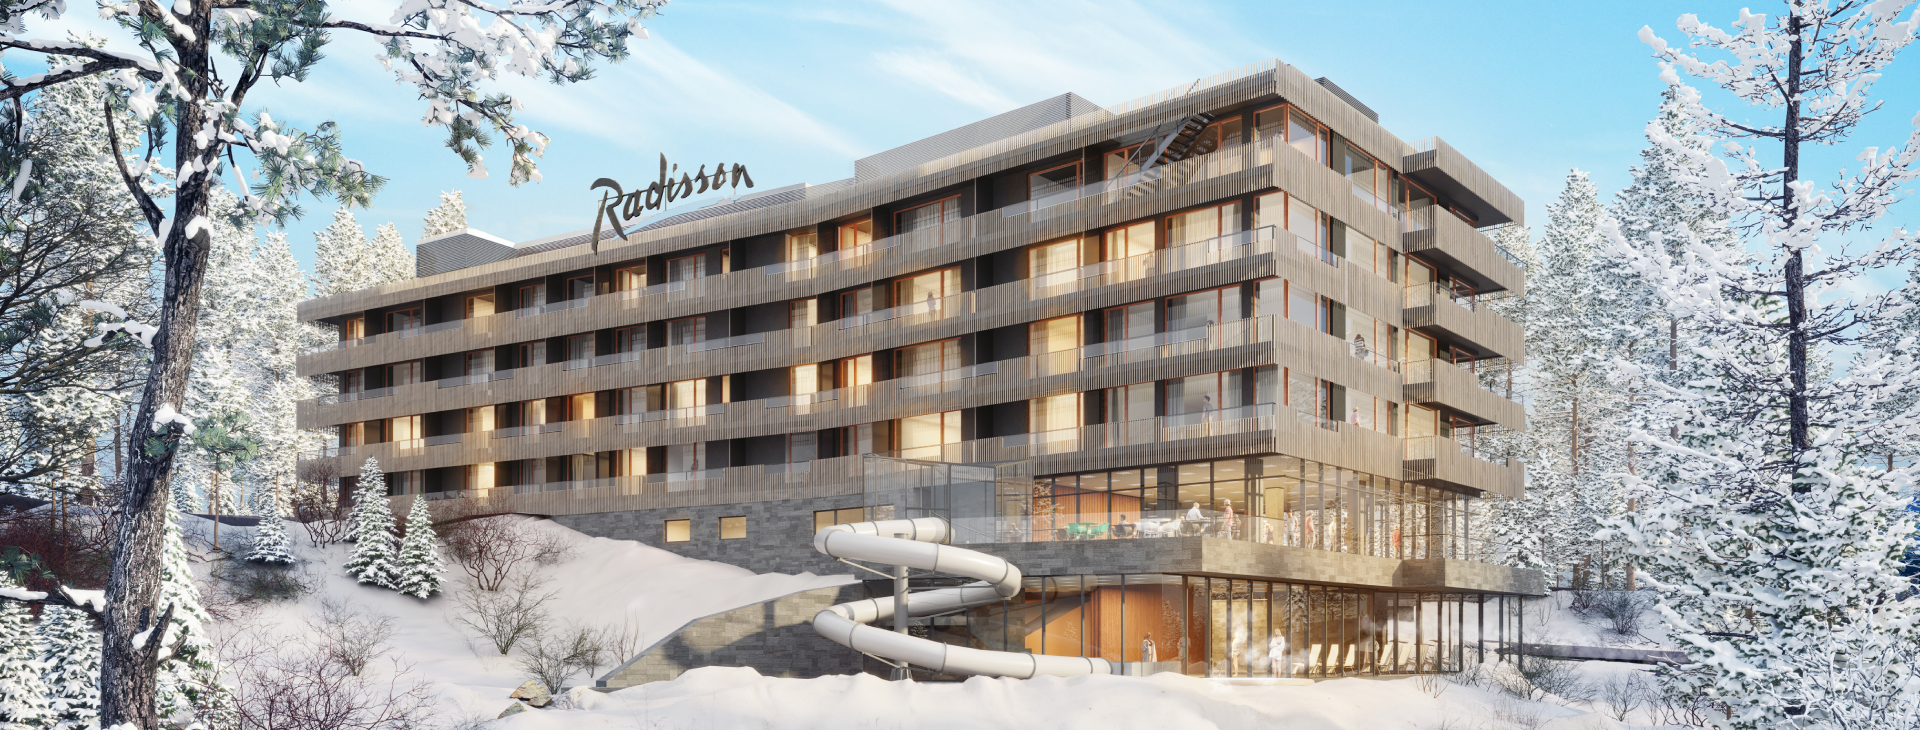 Radisson_SP